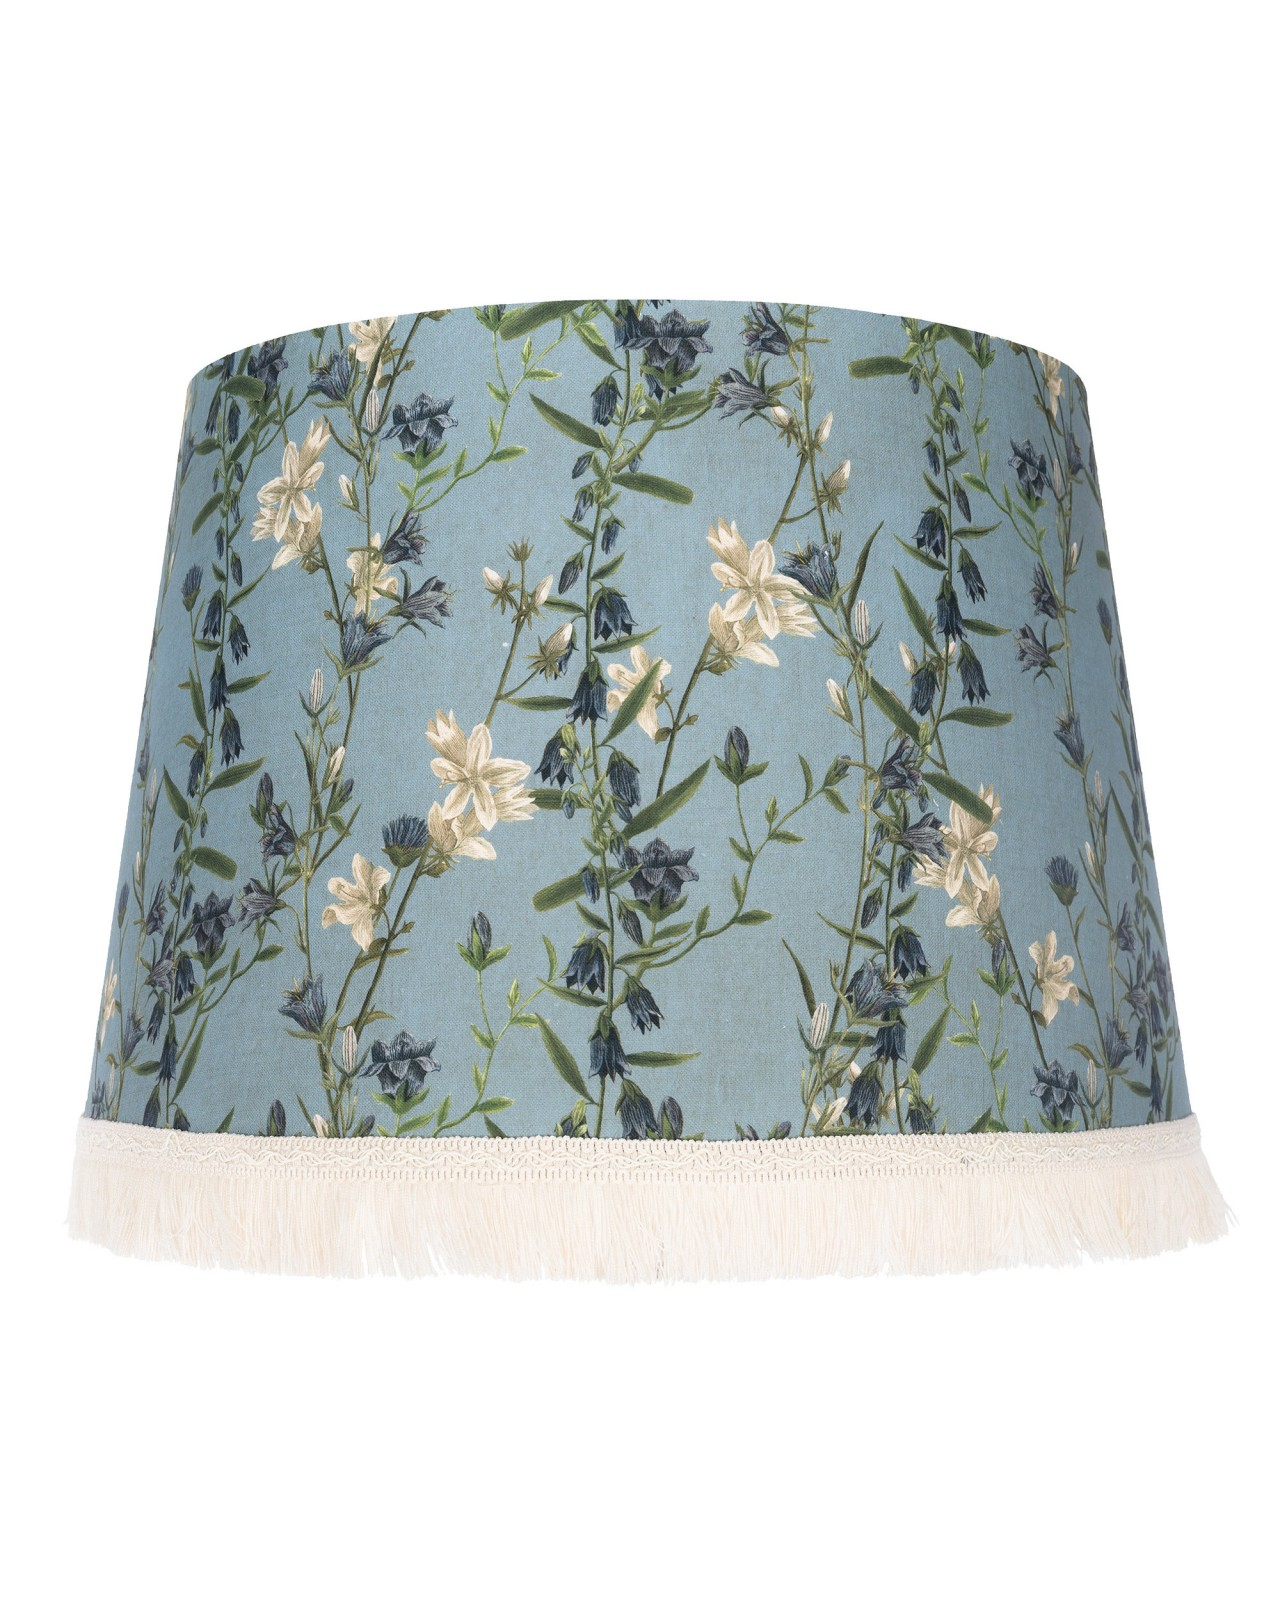 DELICATE BLOOM EMPIRE Table Lamp